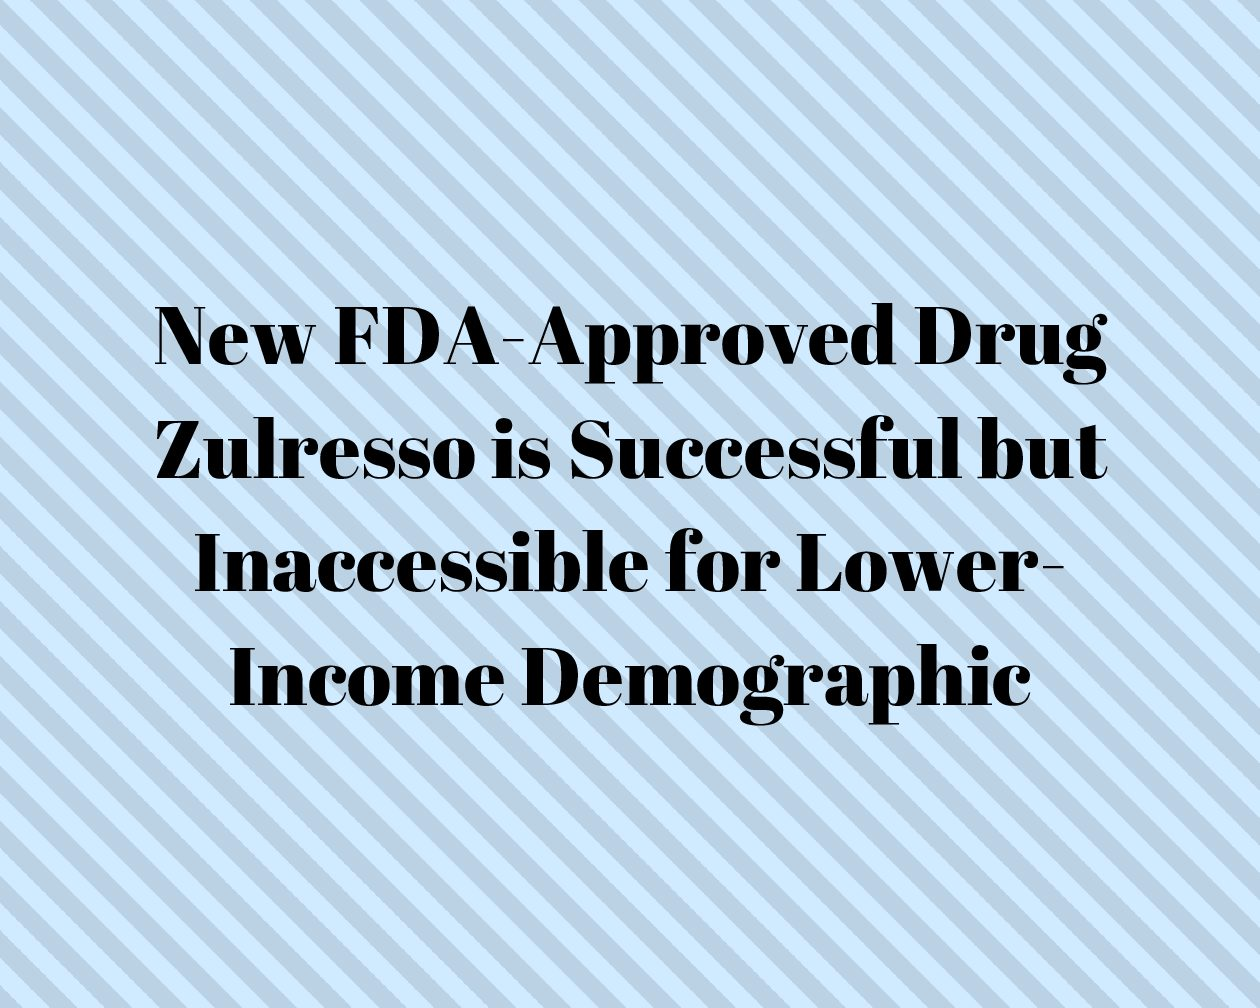 New FDA-Approved Drug Zulresso is Successful but Inaccessible for Lower Income Demographic